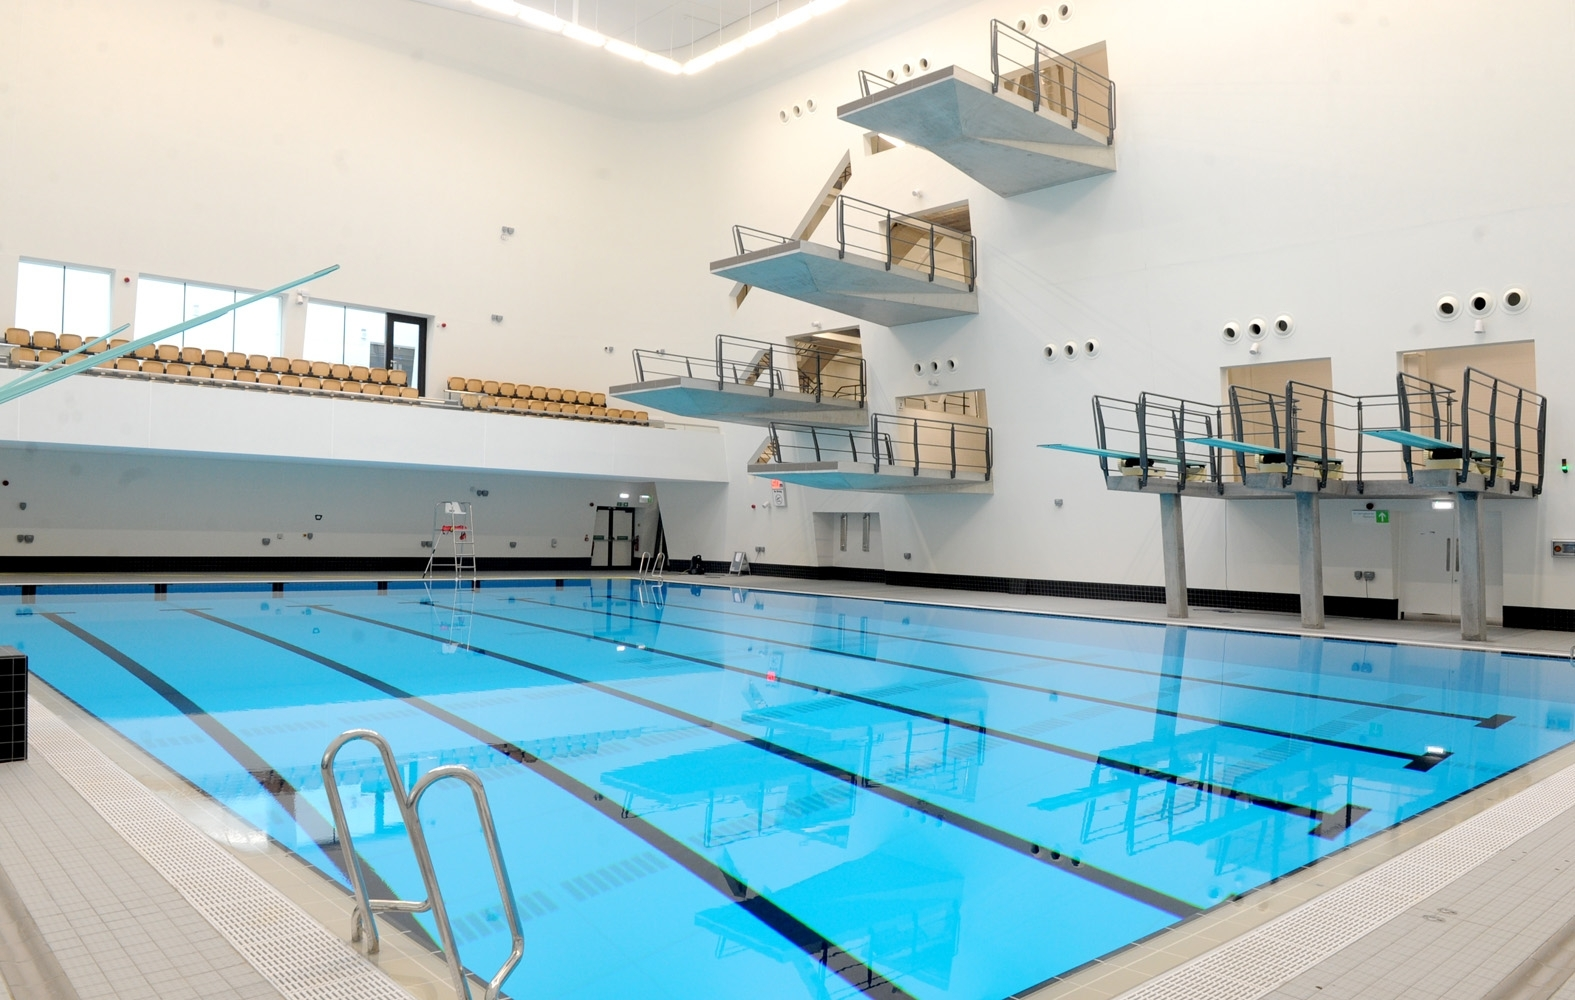 The pool at Aberdeen Sports Village's aquatic centre